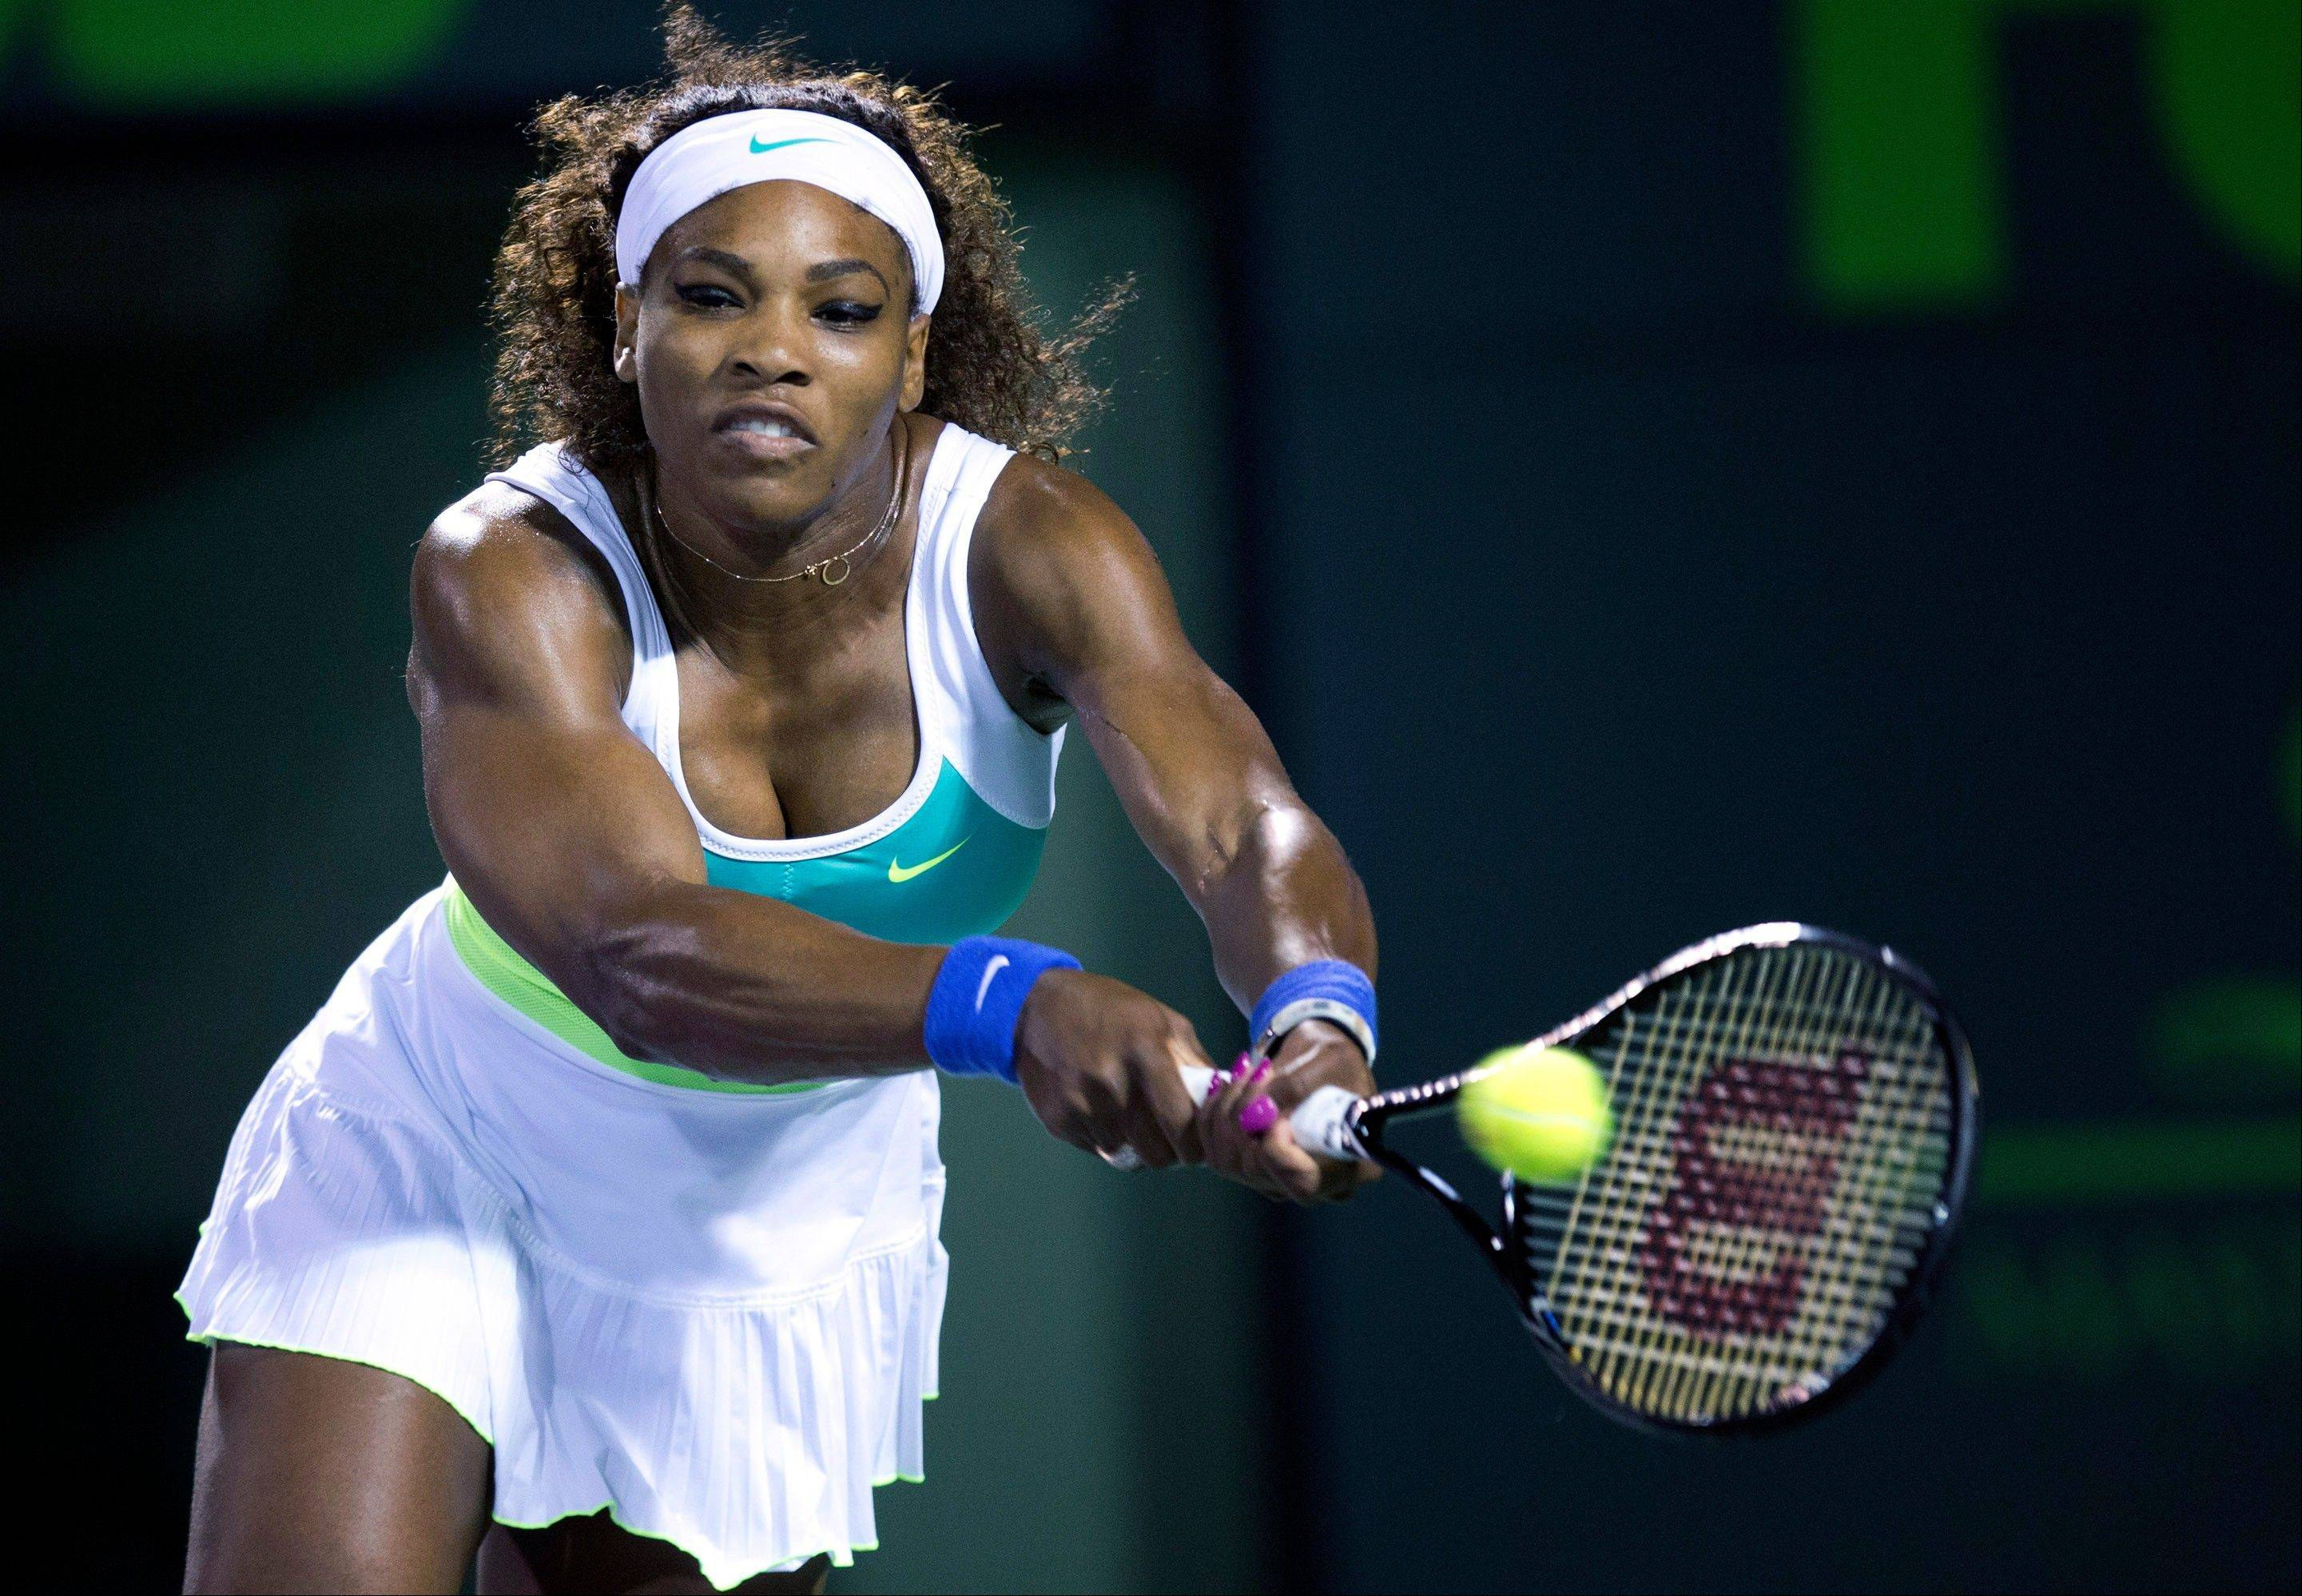 Serena Williams returns the ball to Ayumi Morita, of Japan, during the Sony Open tennis tournament, Saturday, March 23, 2013, in Key Biscayne, Fla. (AP Photo/J Pat Carter)